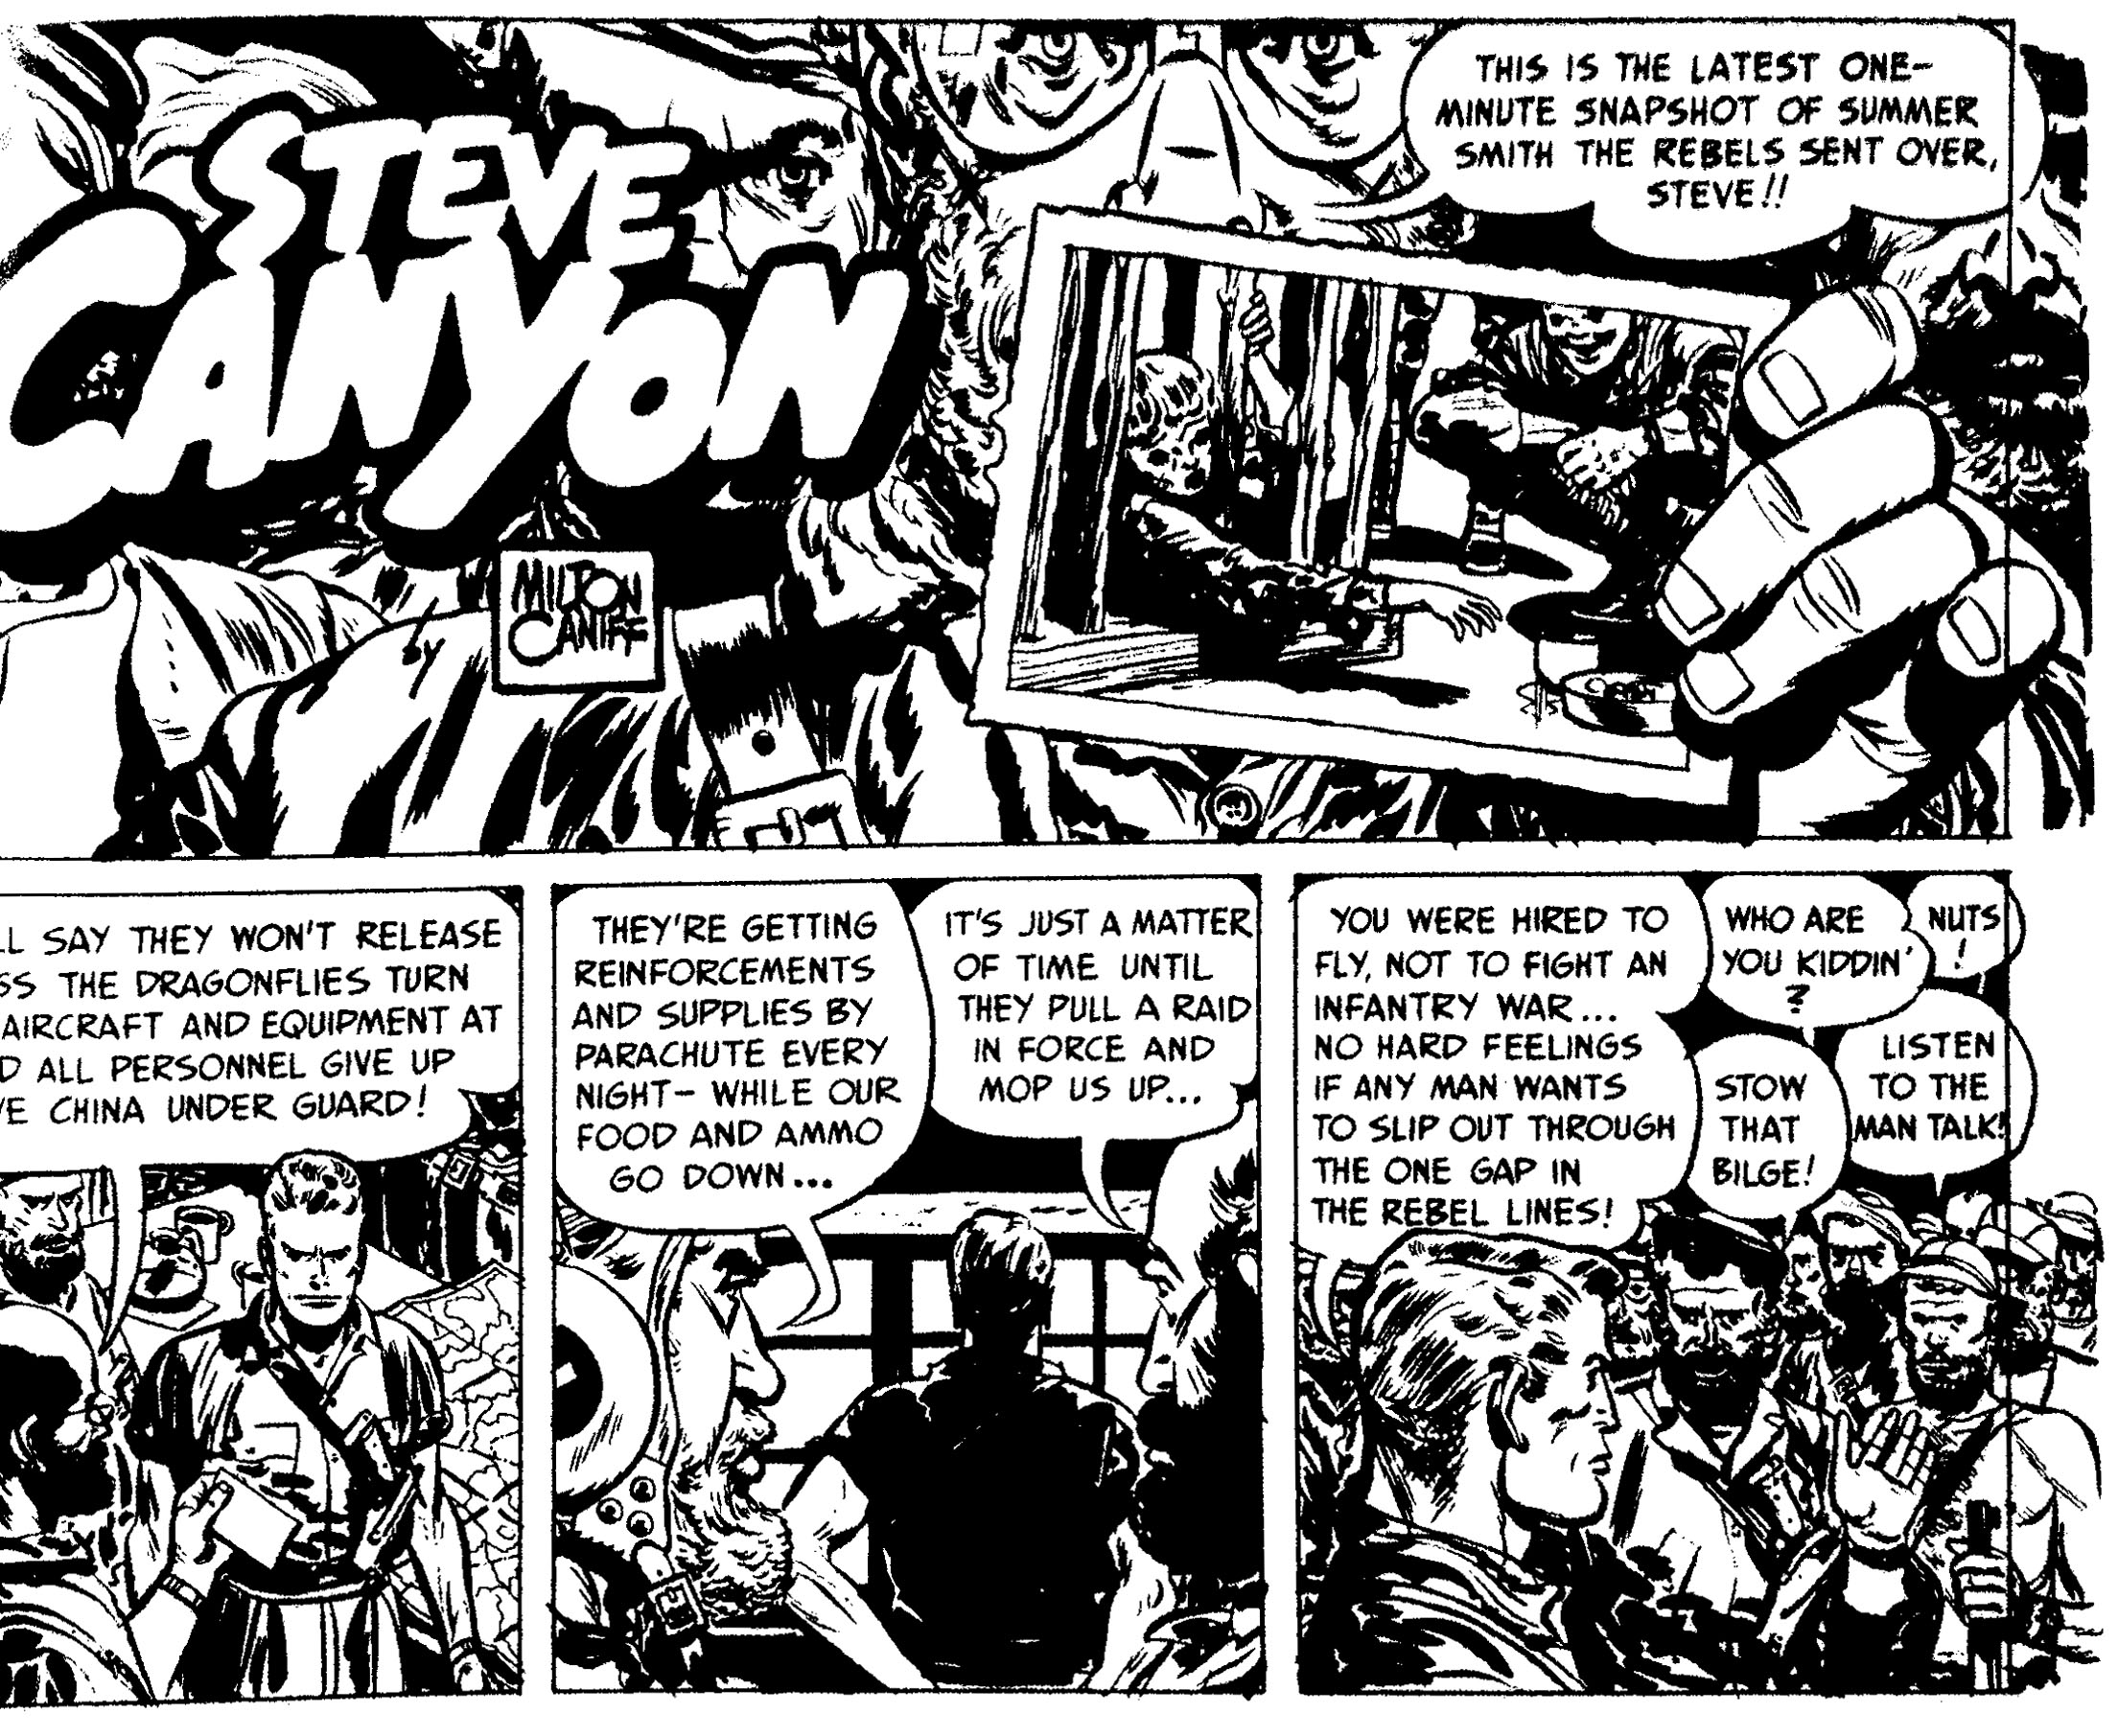 Steve Canyon 1949 review